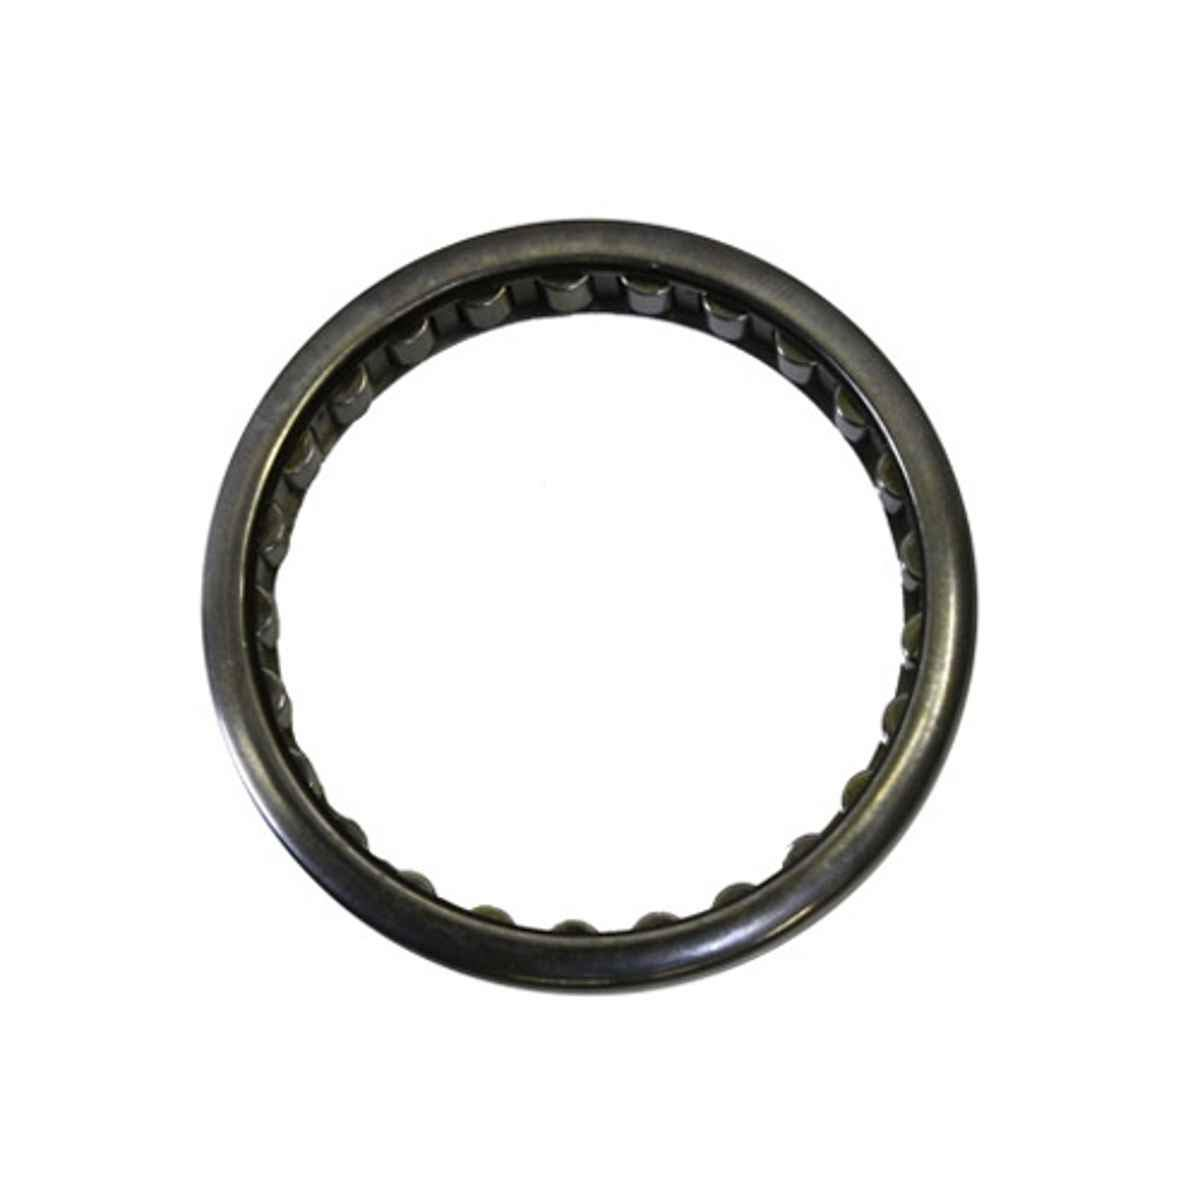 Mail order All Balls Very popular 23-1006 Needle Roller Bearing